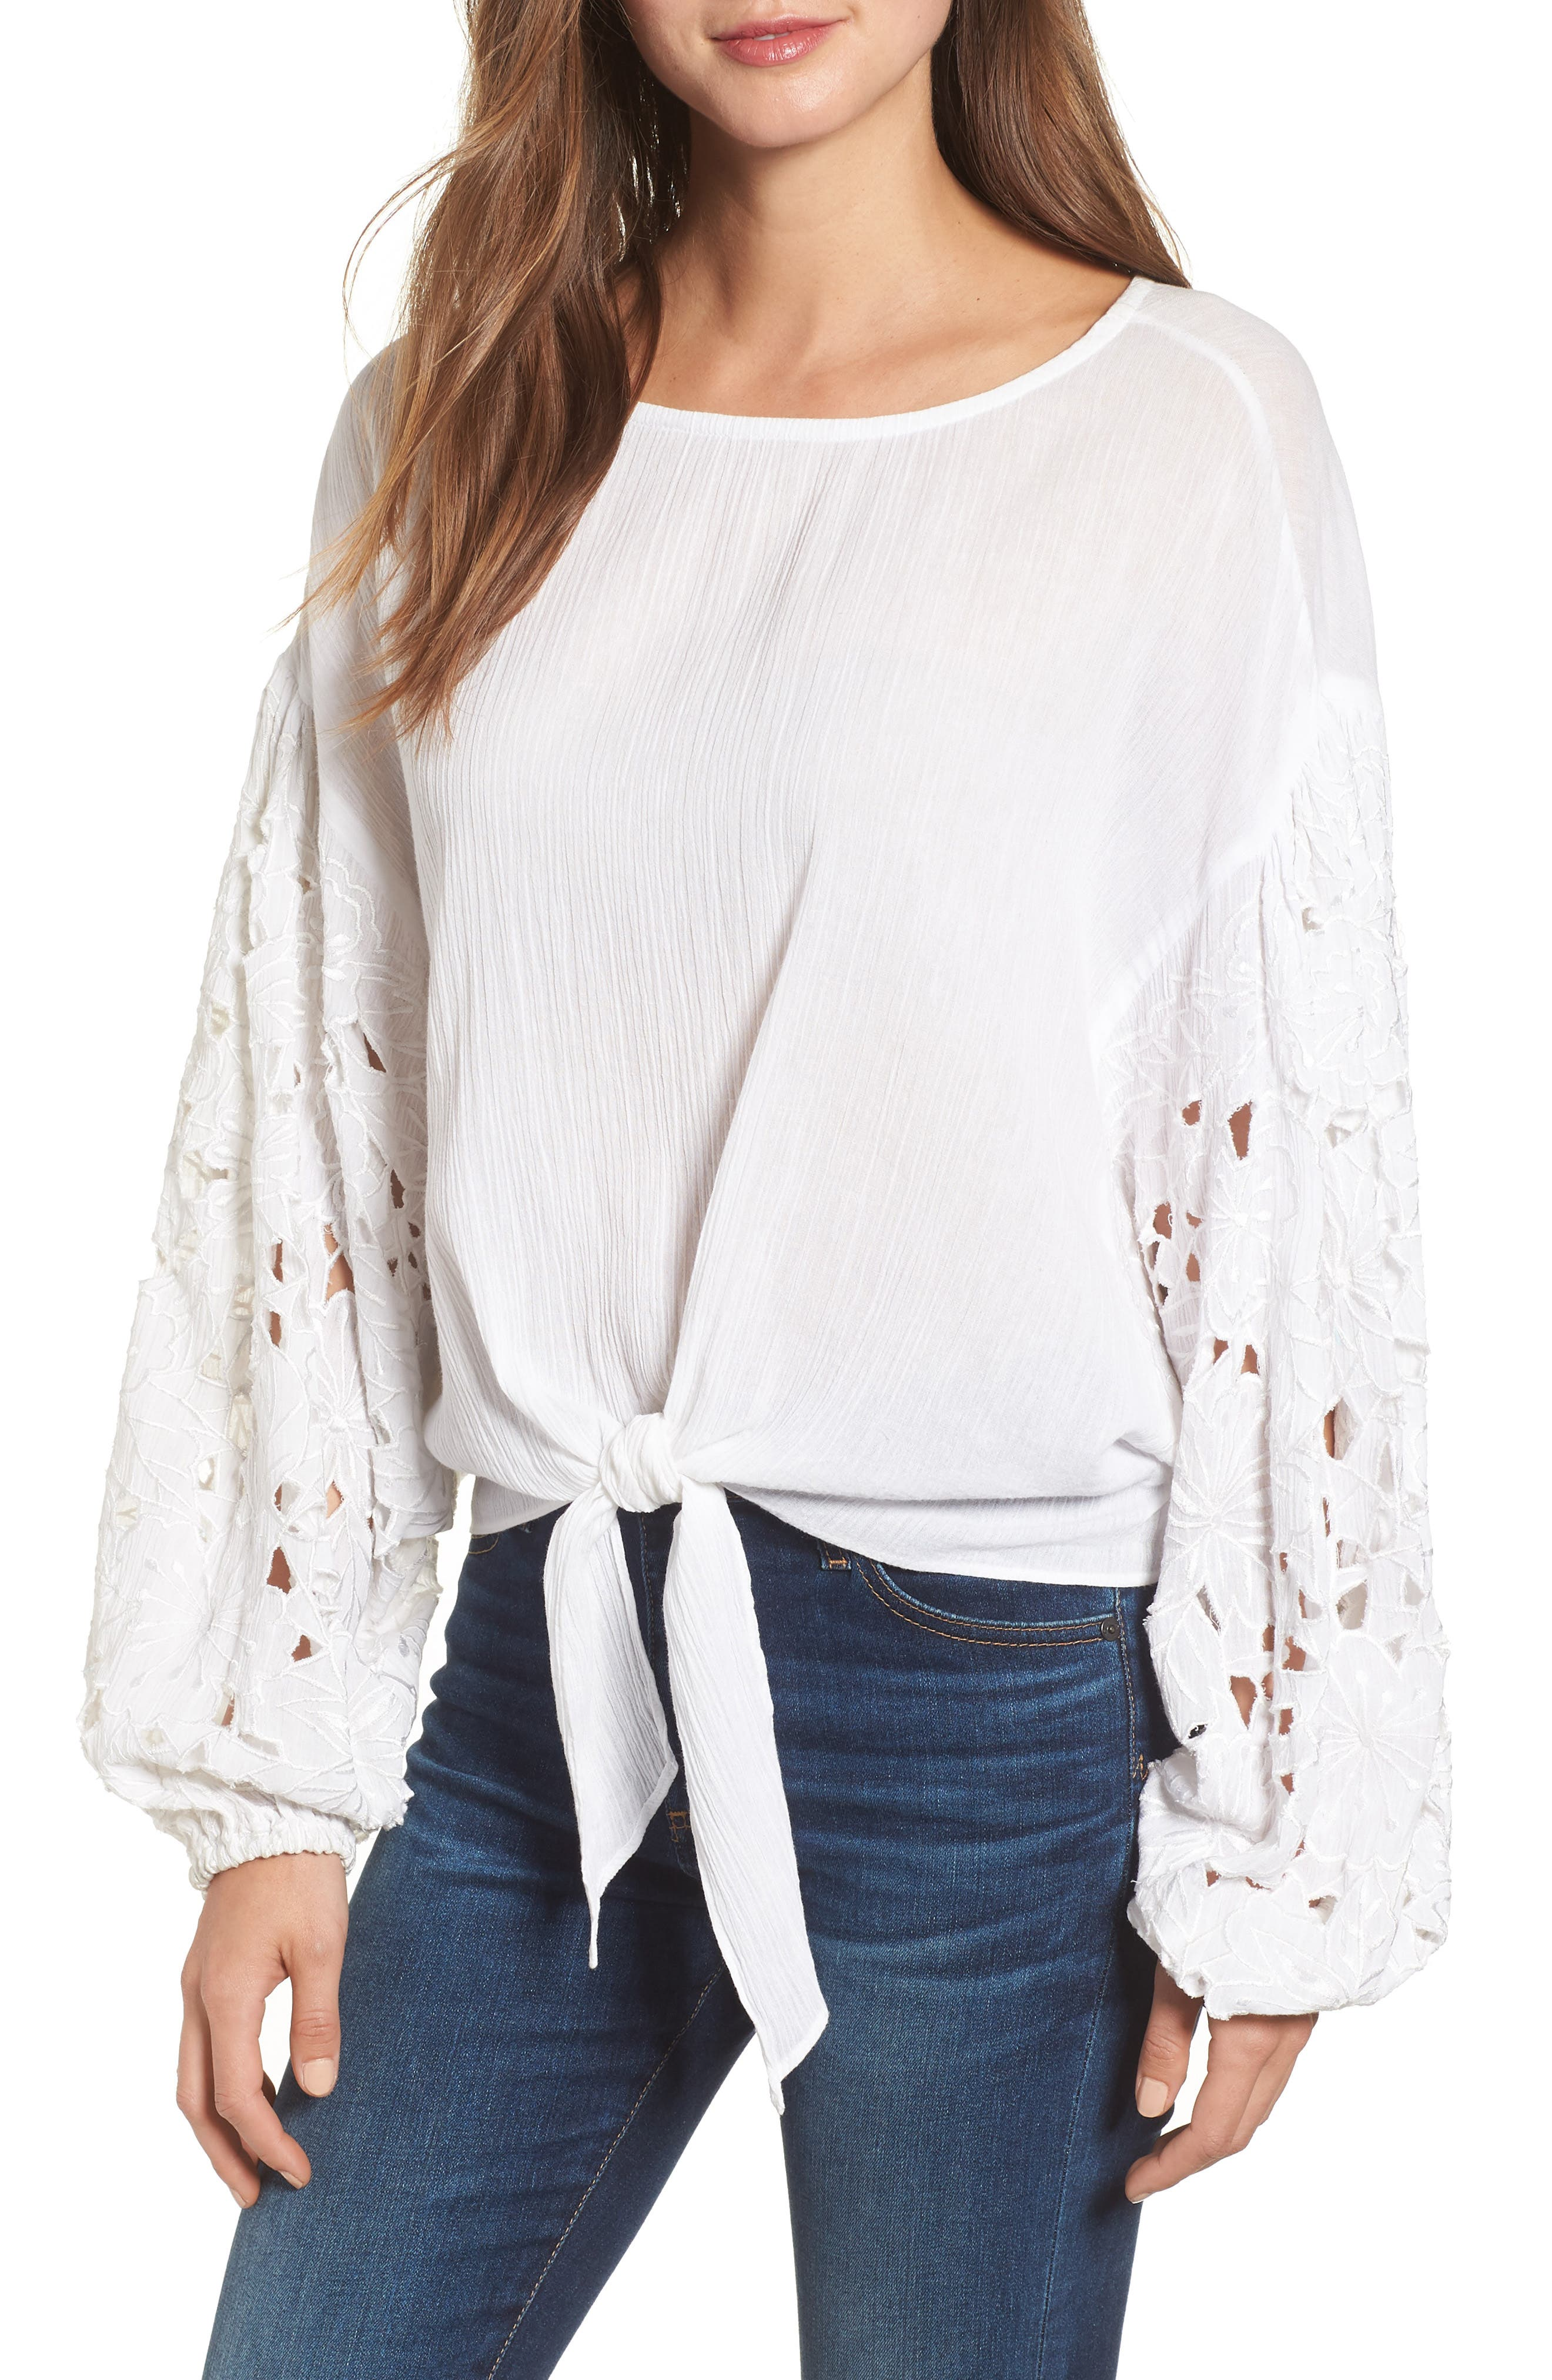 KAS NEW YORK Tie Front Cut Floral Sleeve Cotton Blouse